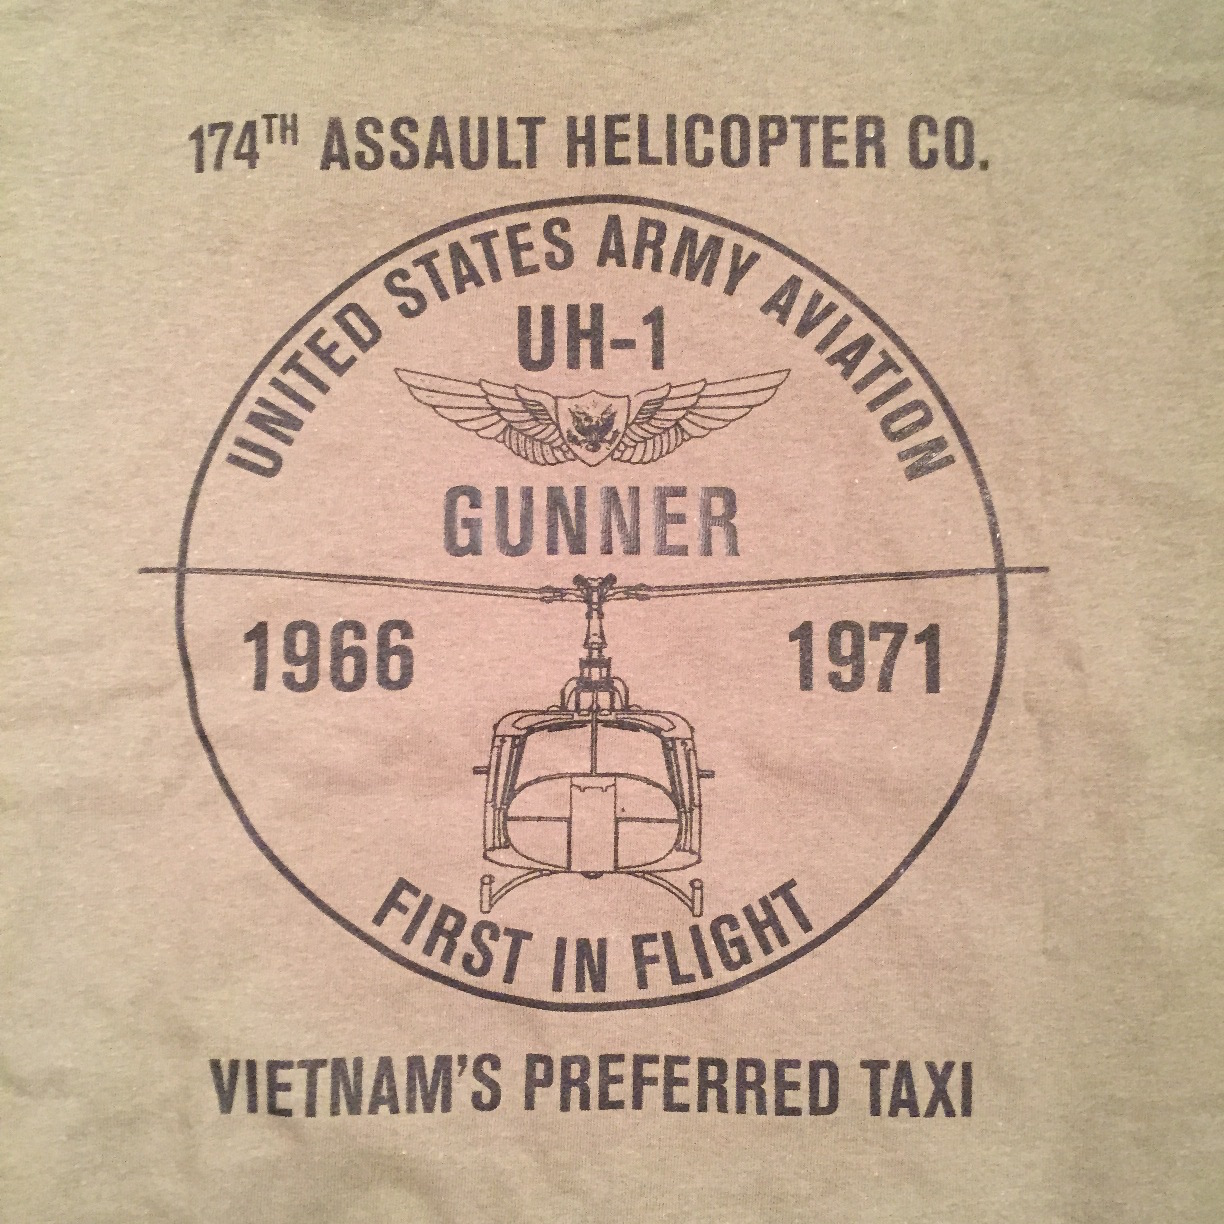 174th ahc vietnam - Od Gunner S T Shirt With Head On Uh 1 On The Front Full Logo On The Back 13 00 Each Only Have M And L Of The Gunners Shirts